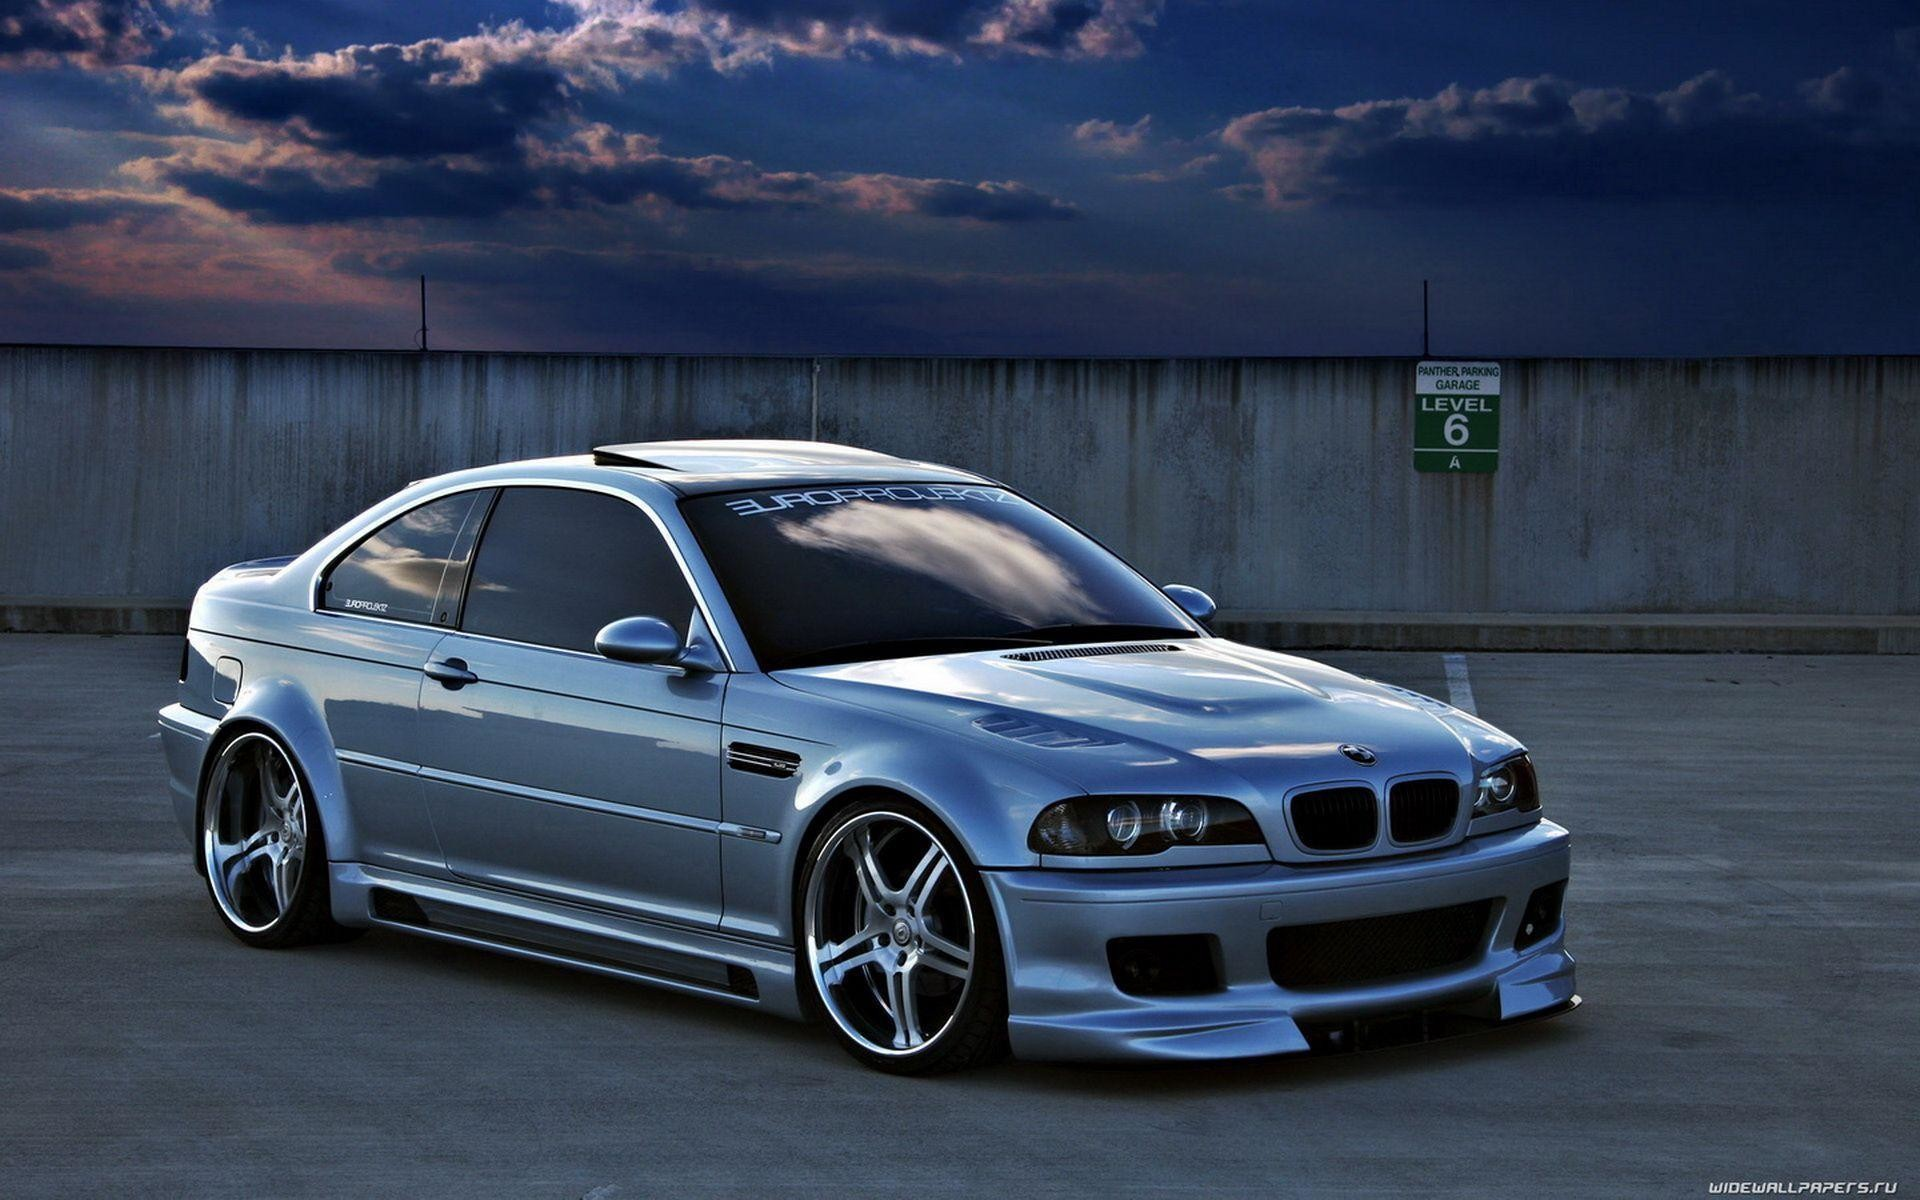 1920x1200 Bmw E46 M3 Wallpaper